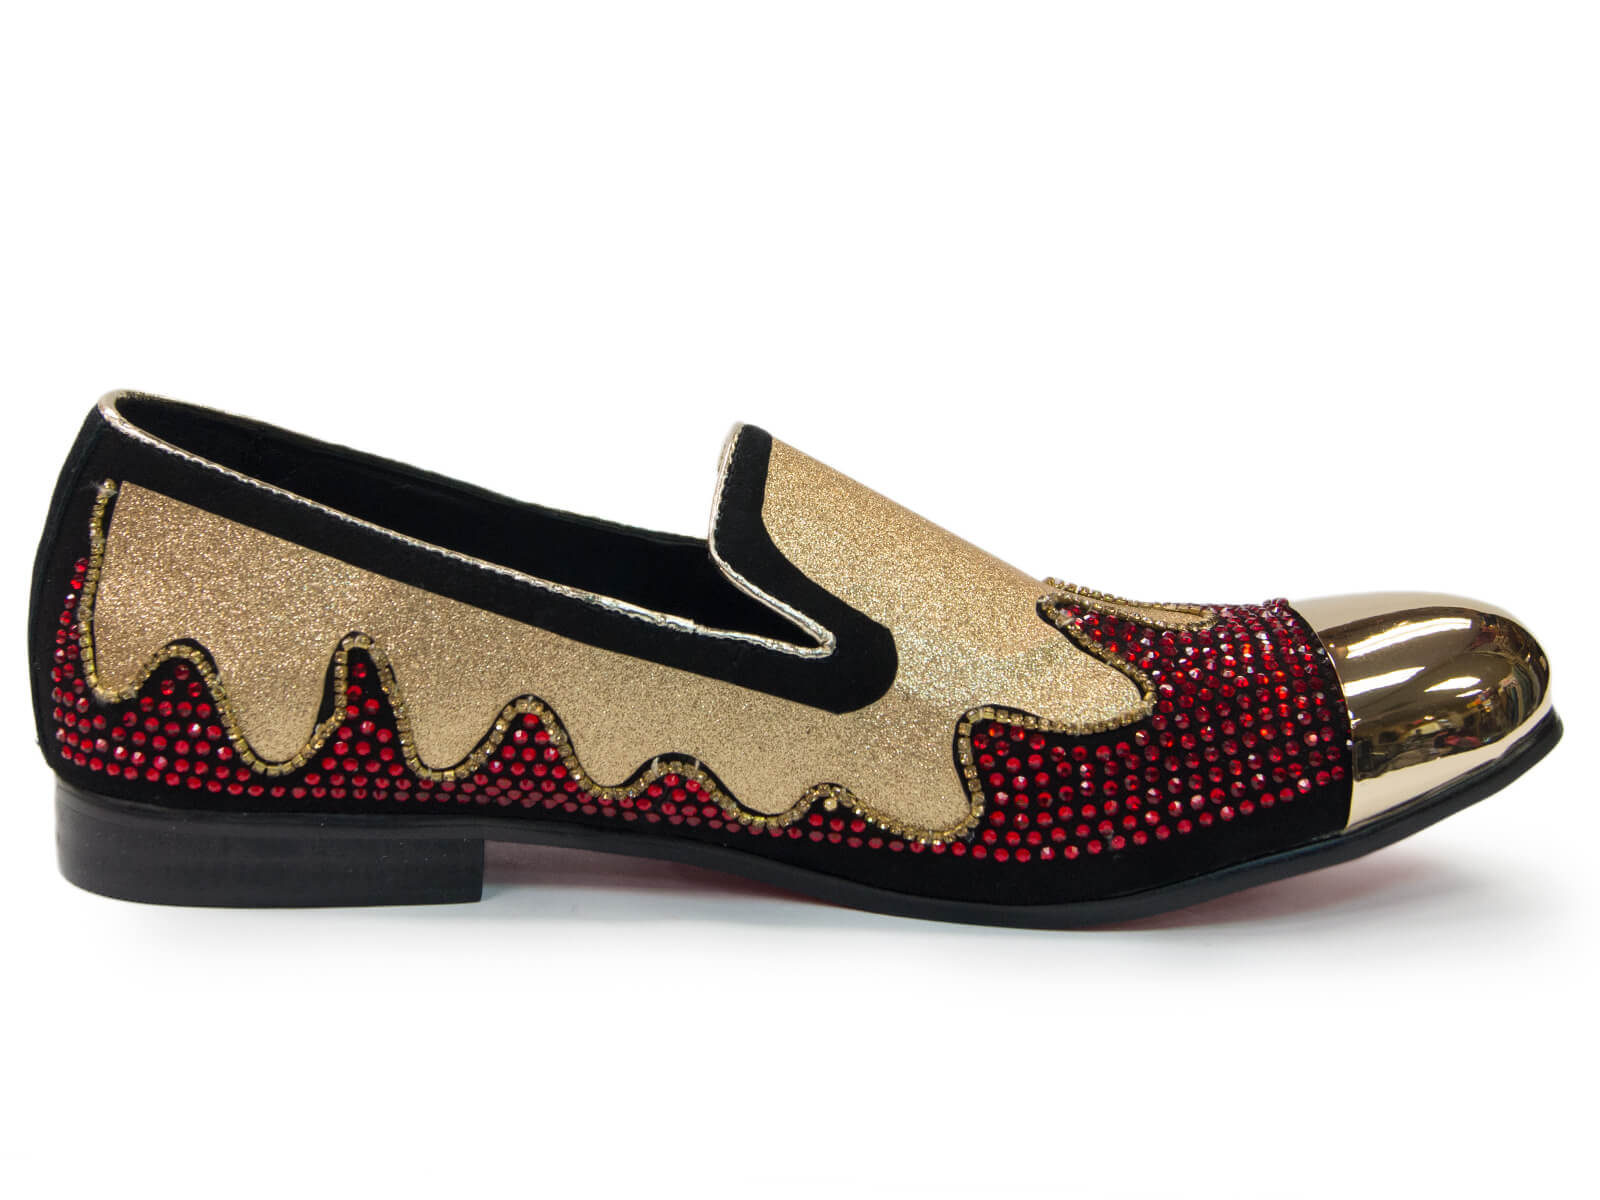 Fiesso Shoes Uk